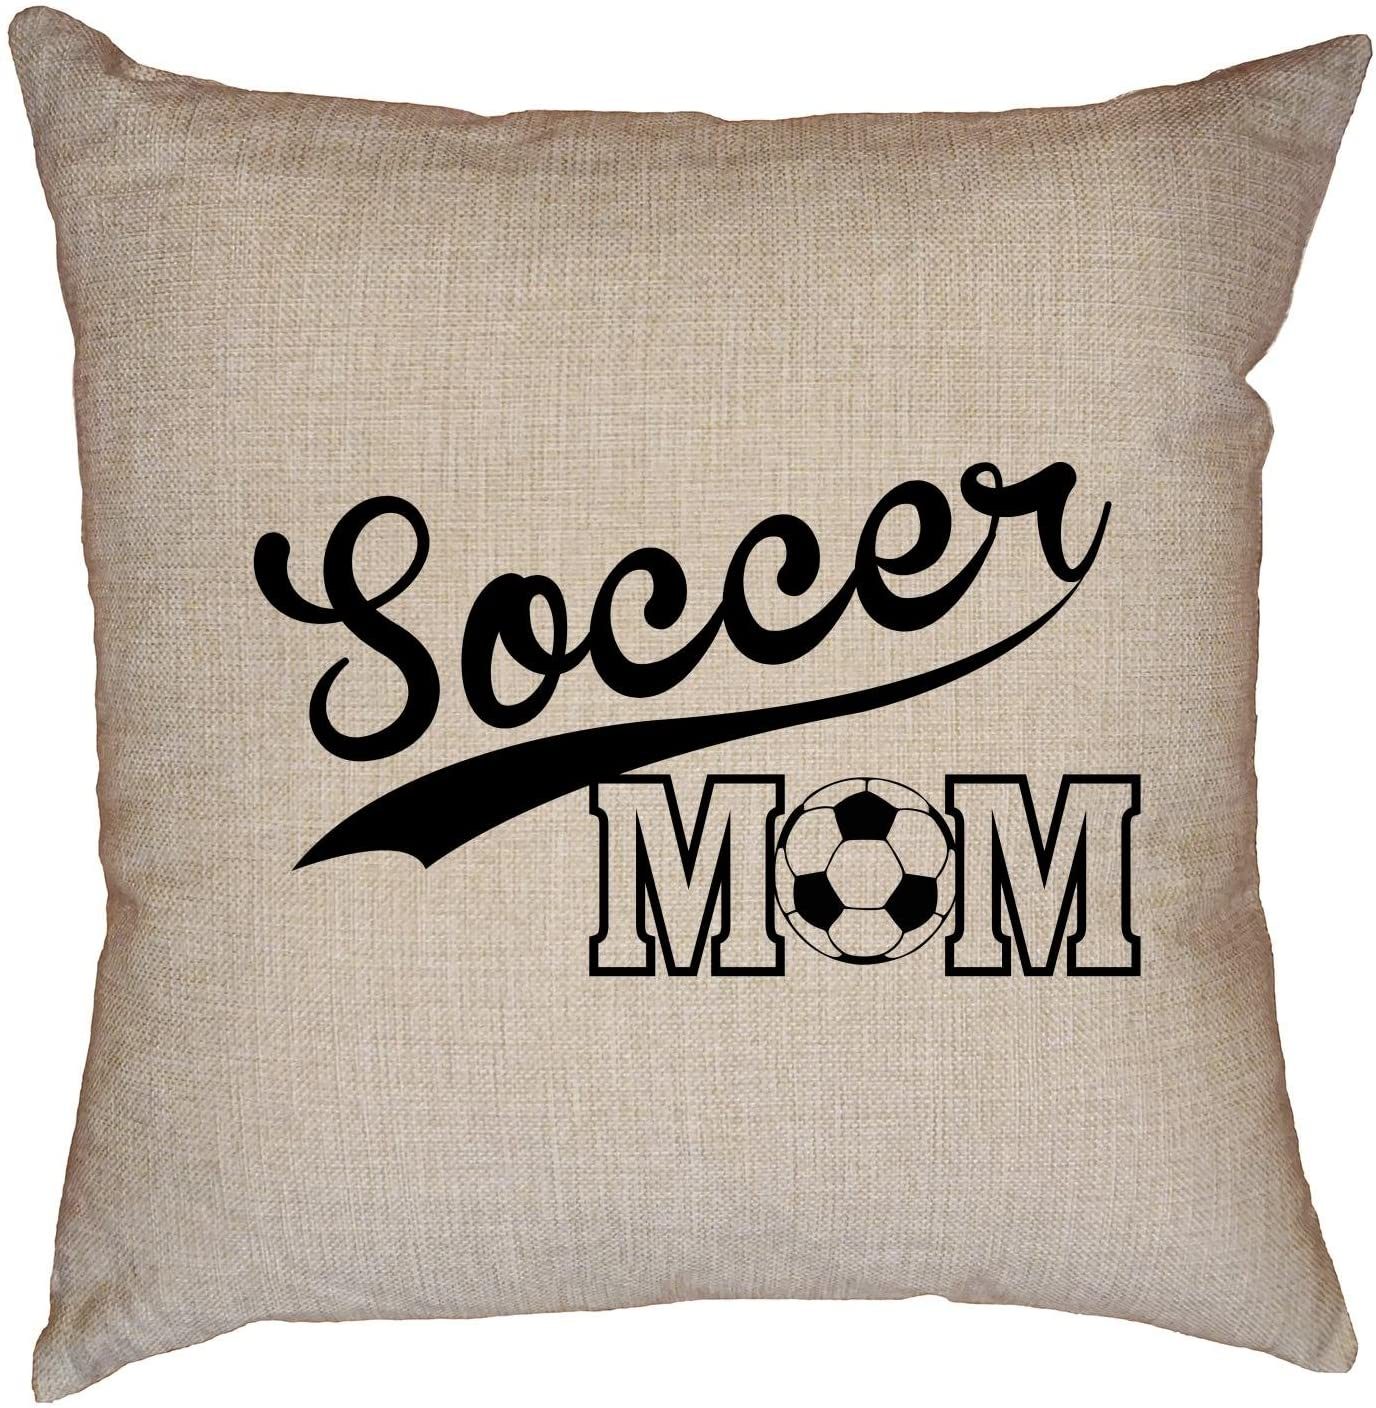 Hollywood Thread Soccer Mom - Soccer Ball Banner - Cool Vintage Decorative Linen Throw Cushion Pillow Case with Insert